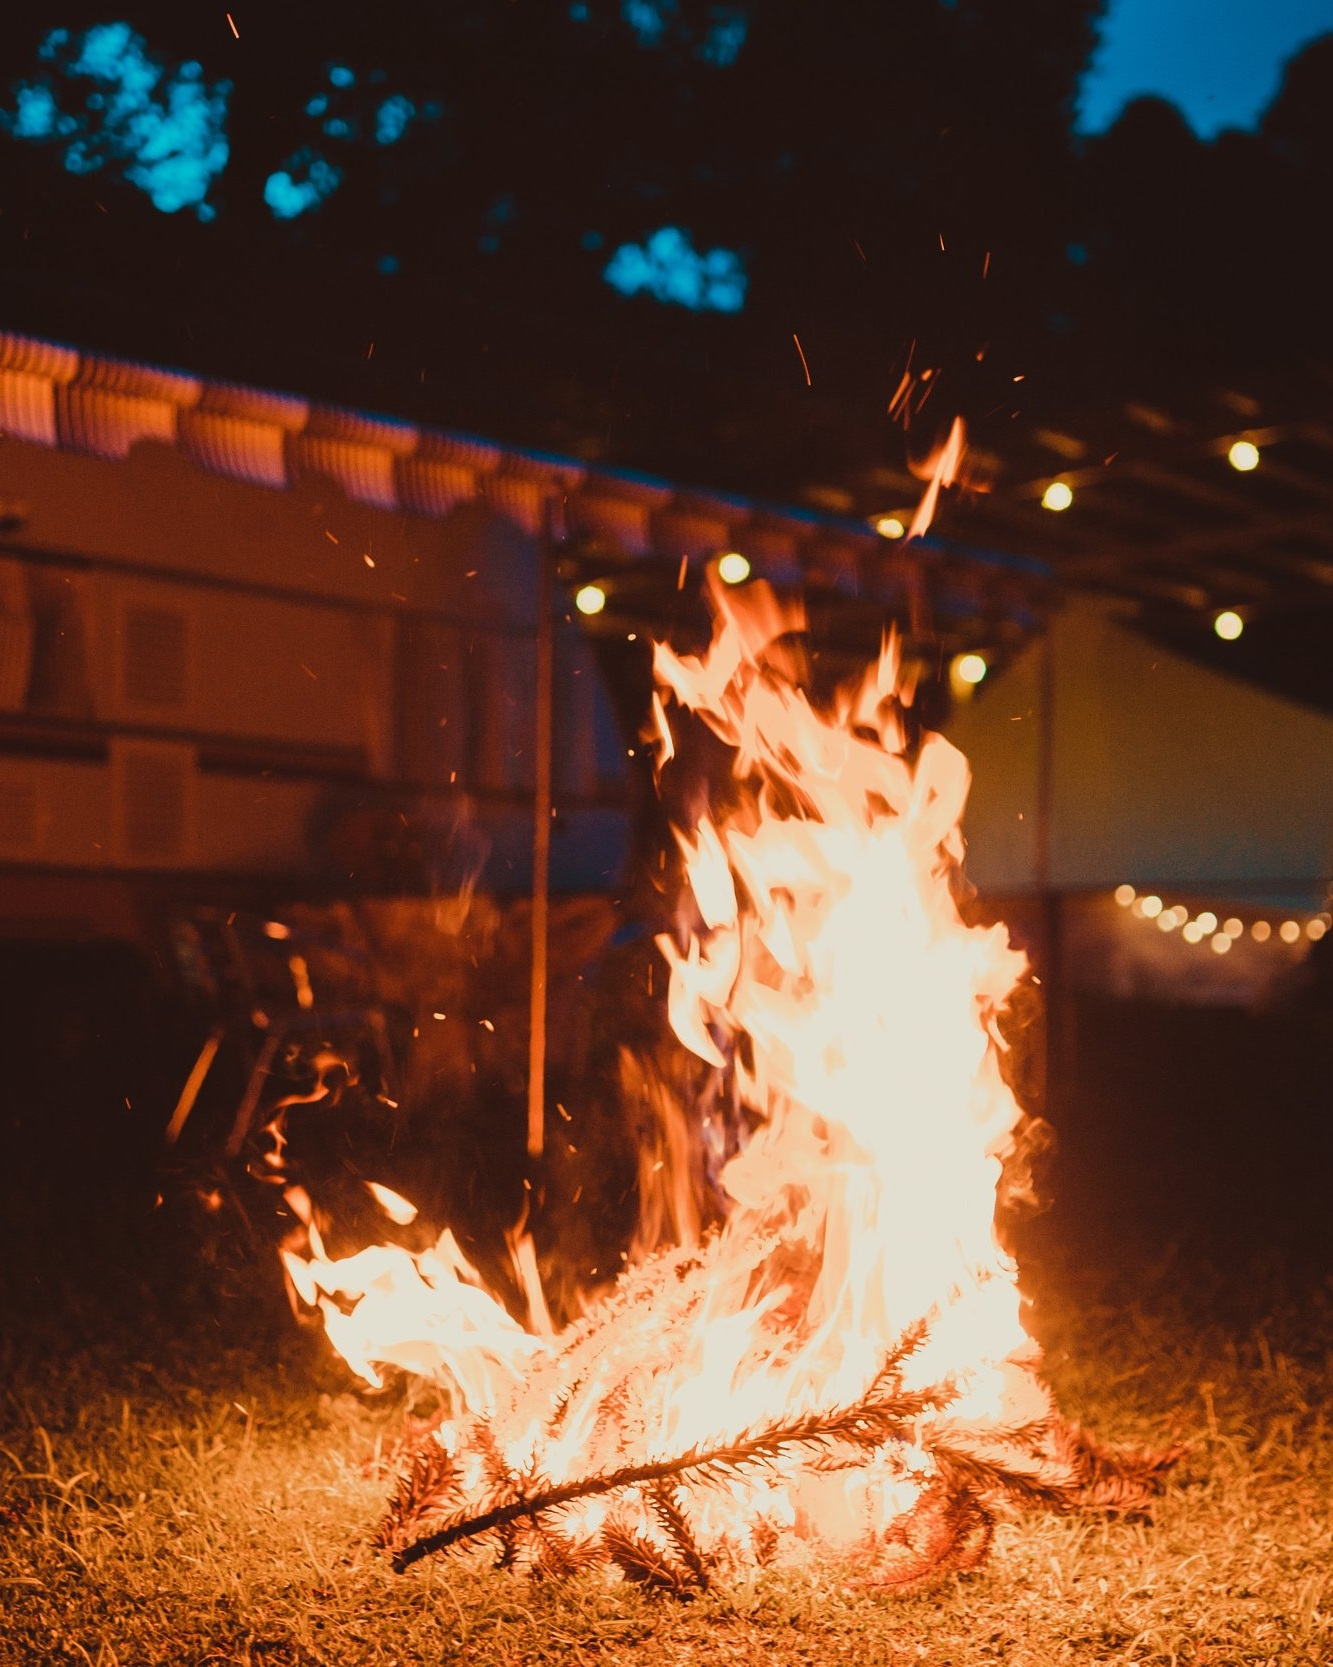 bonfire-evening-fire-1177511.jpg